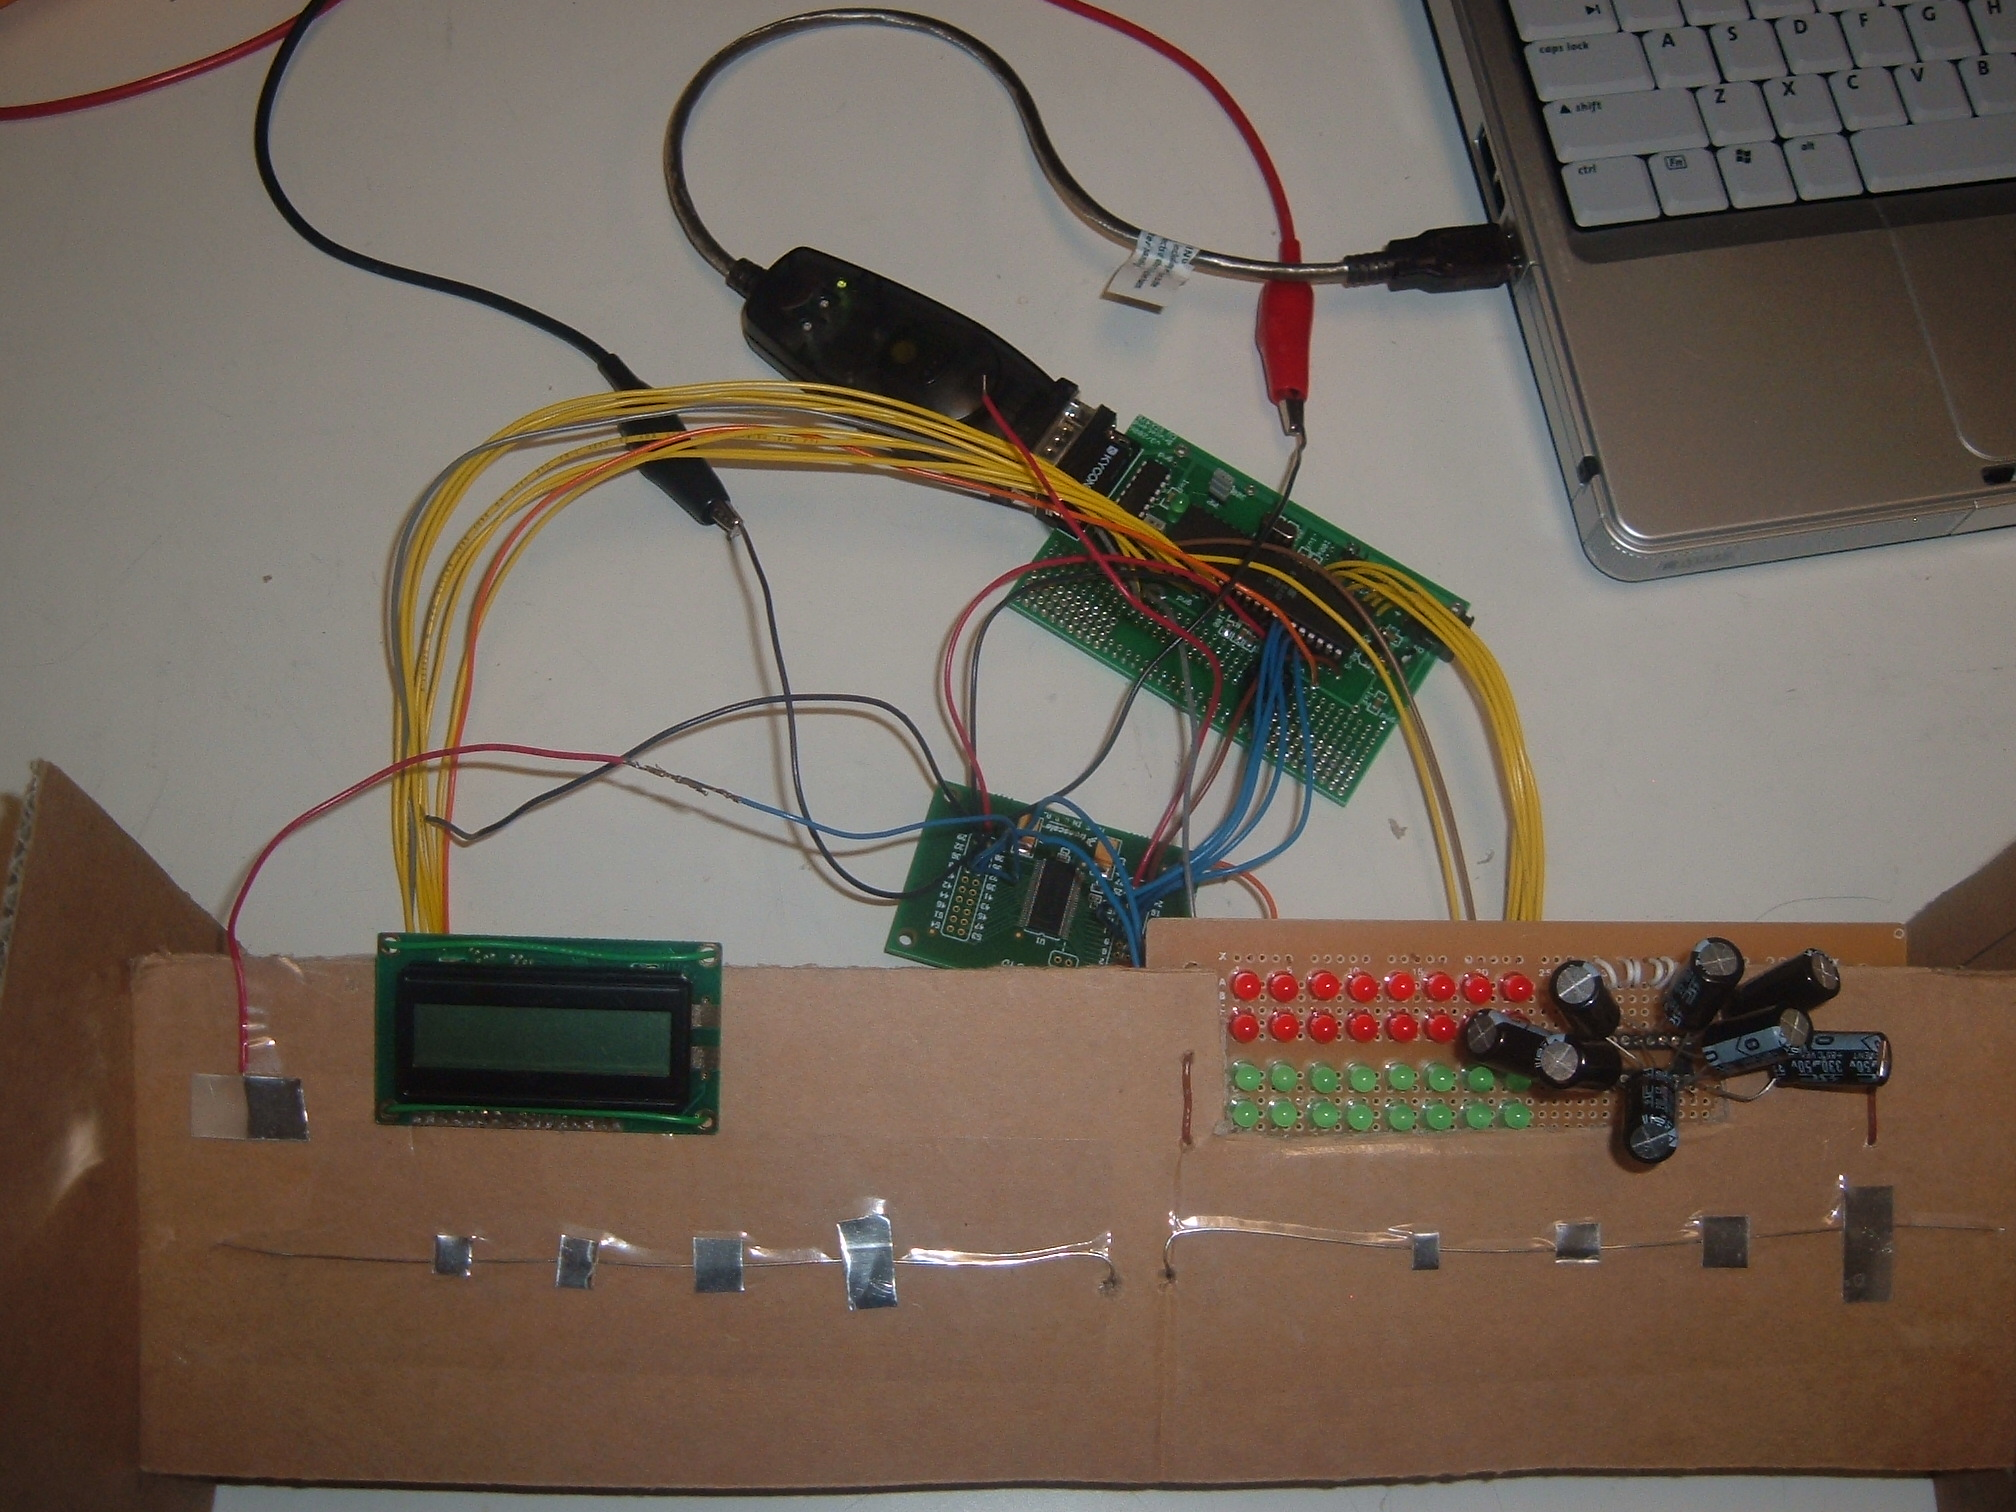 Ece 476 Final Project Siddharth Gauba And Byron Singh Midi Keyboard Wiring Diagram Capacitive Sensor Based With